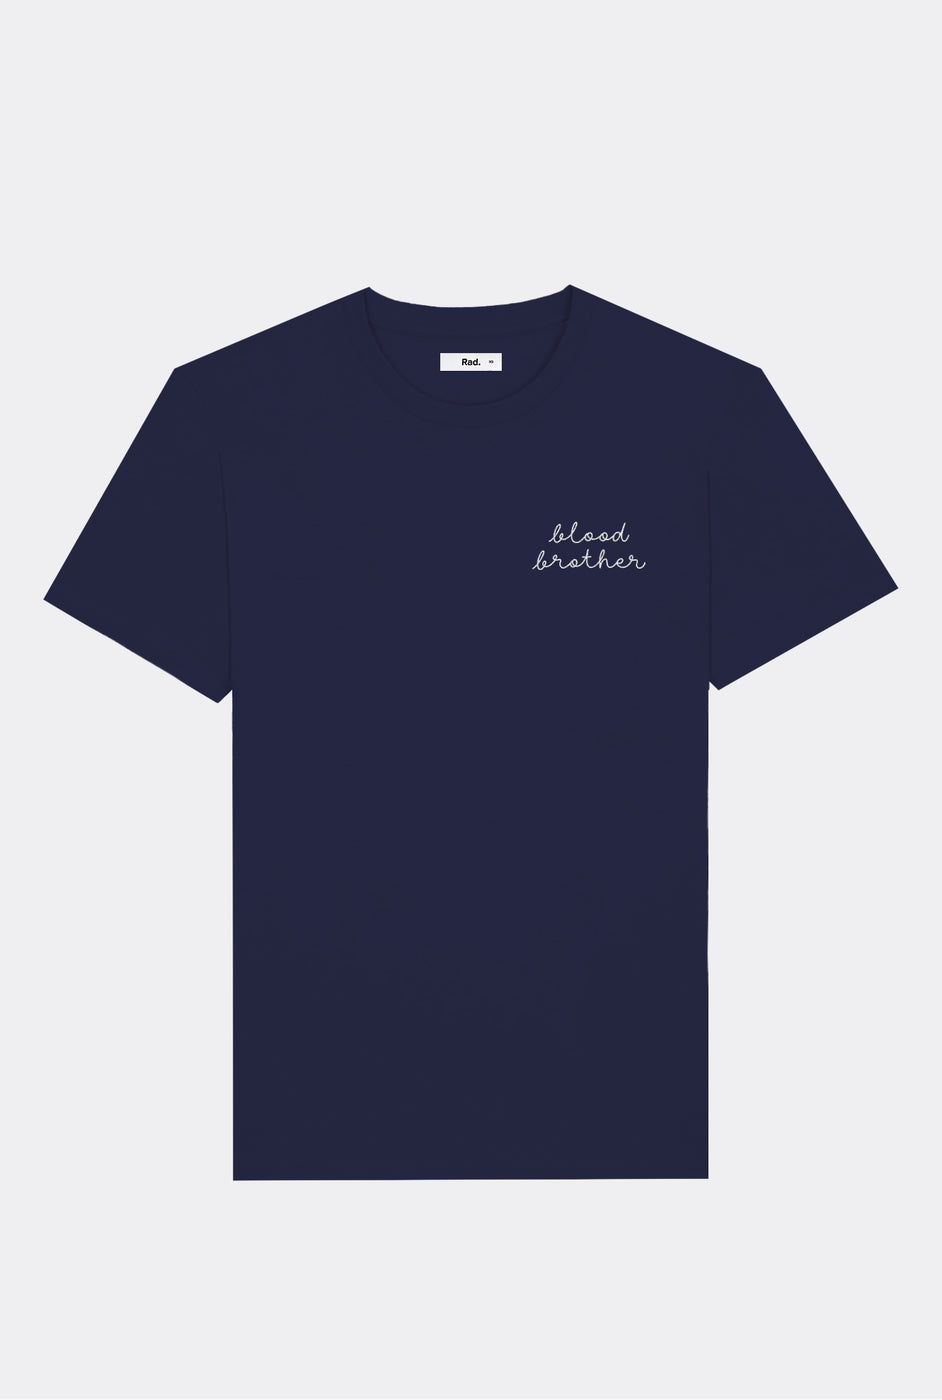 T-Shirt S/S Blood Brother - Embroidered